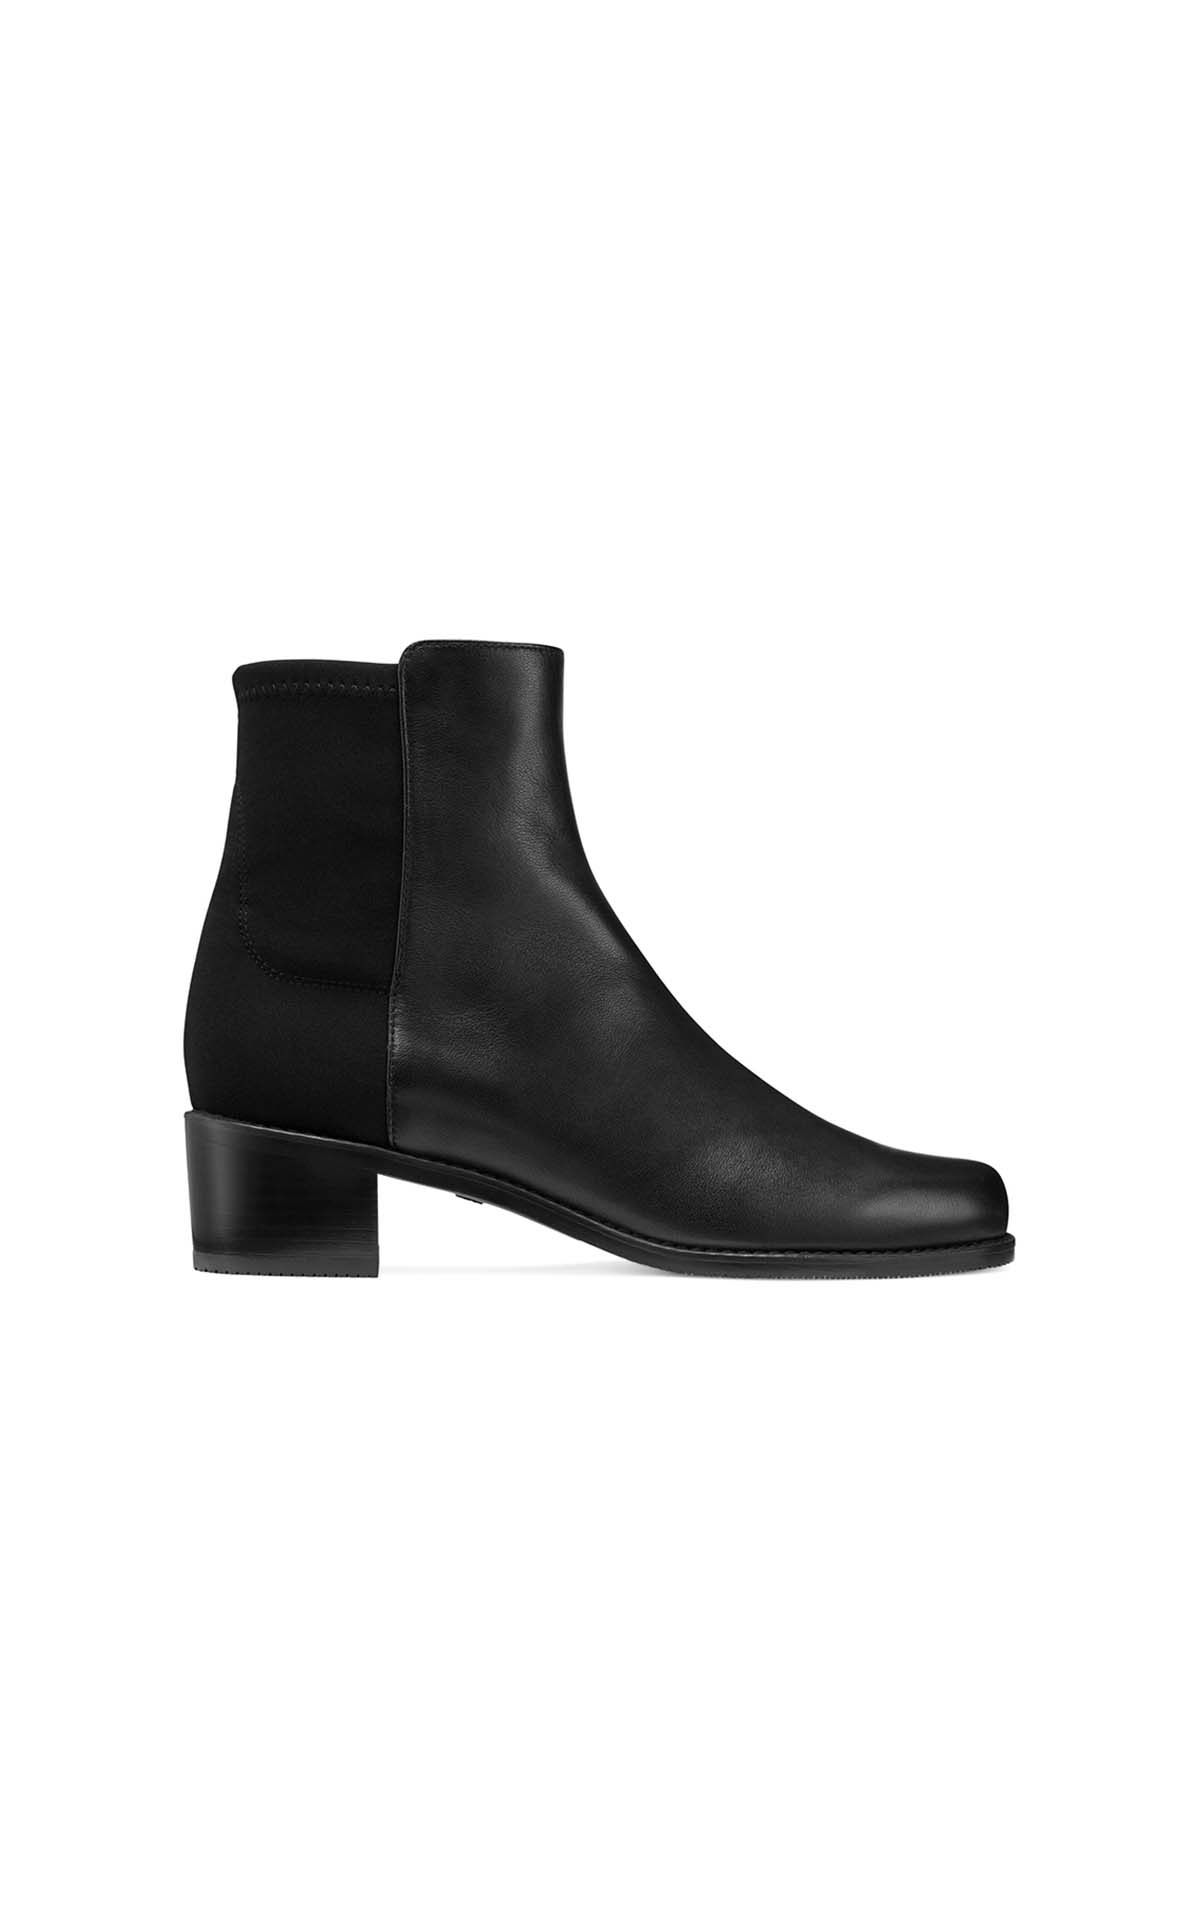 Stuart Weitzman east on reserve boot in black at The Bicester Village Shopping Collection